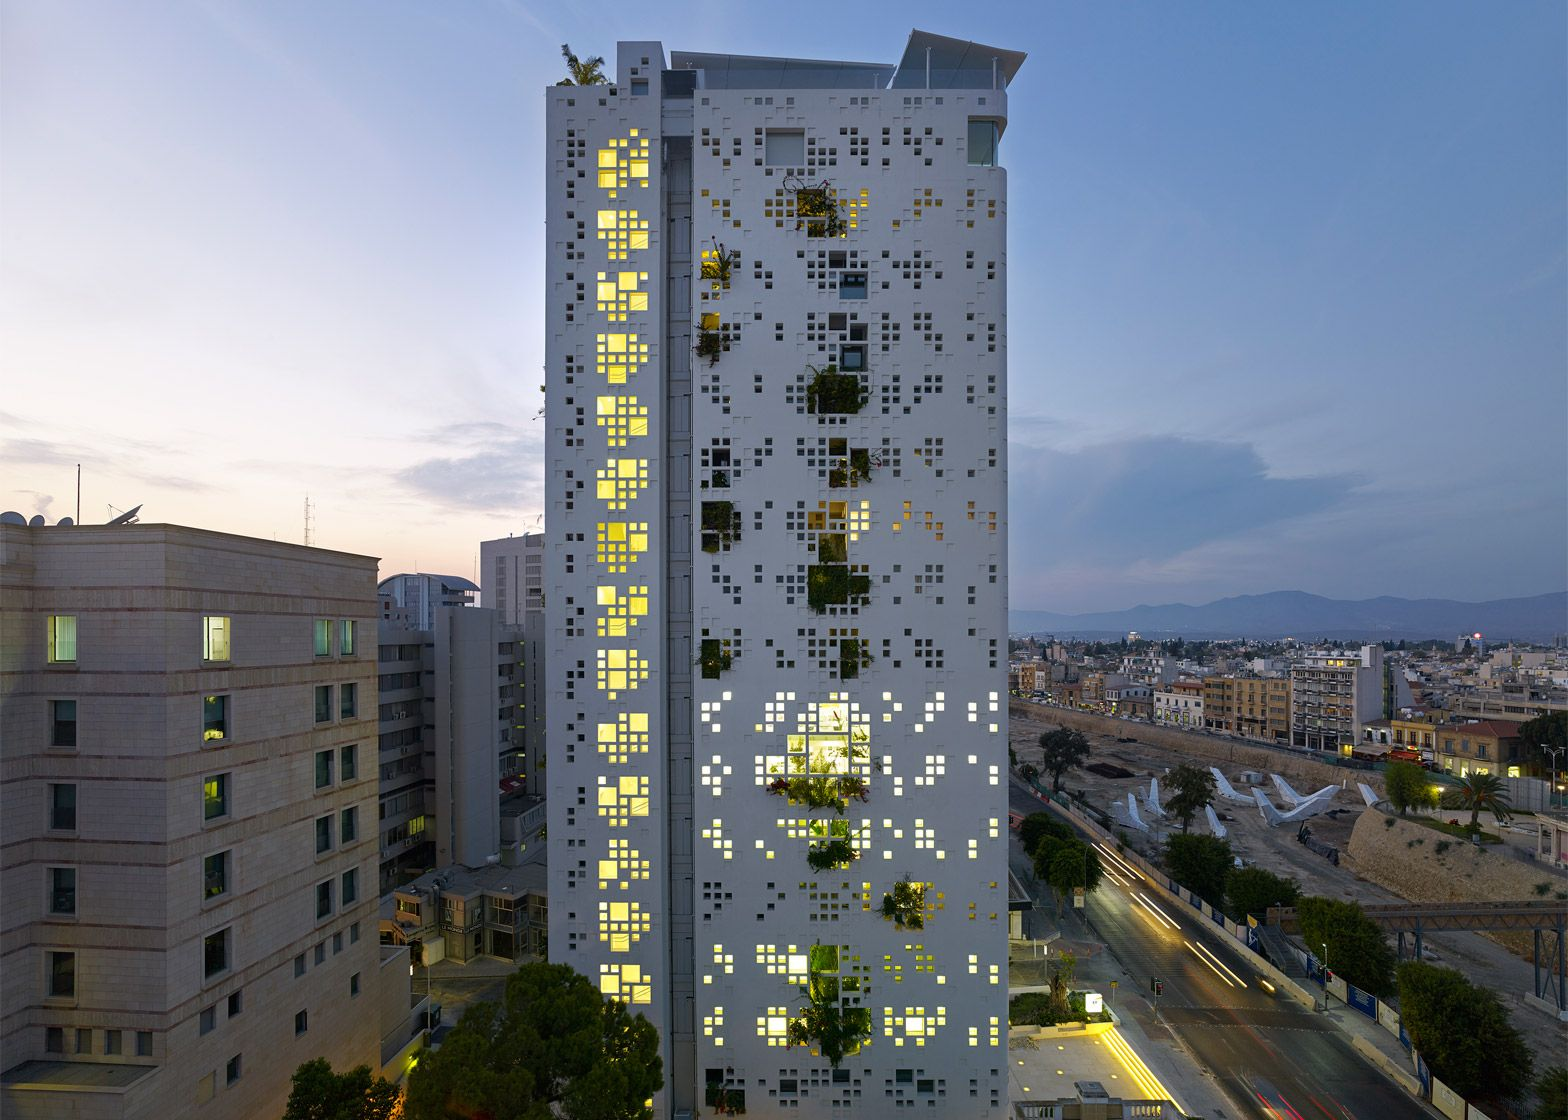 Jean nouvel 39 s cyprus tower has plants bursting through for Architecture jean nouvel